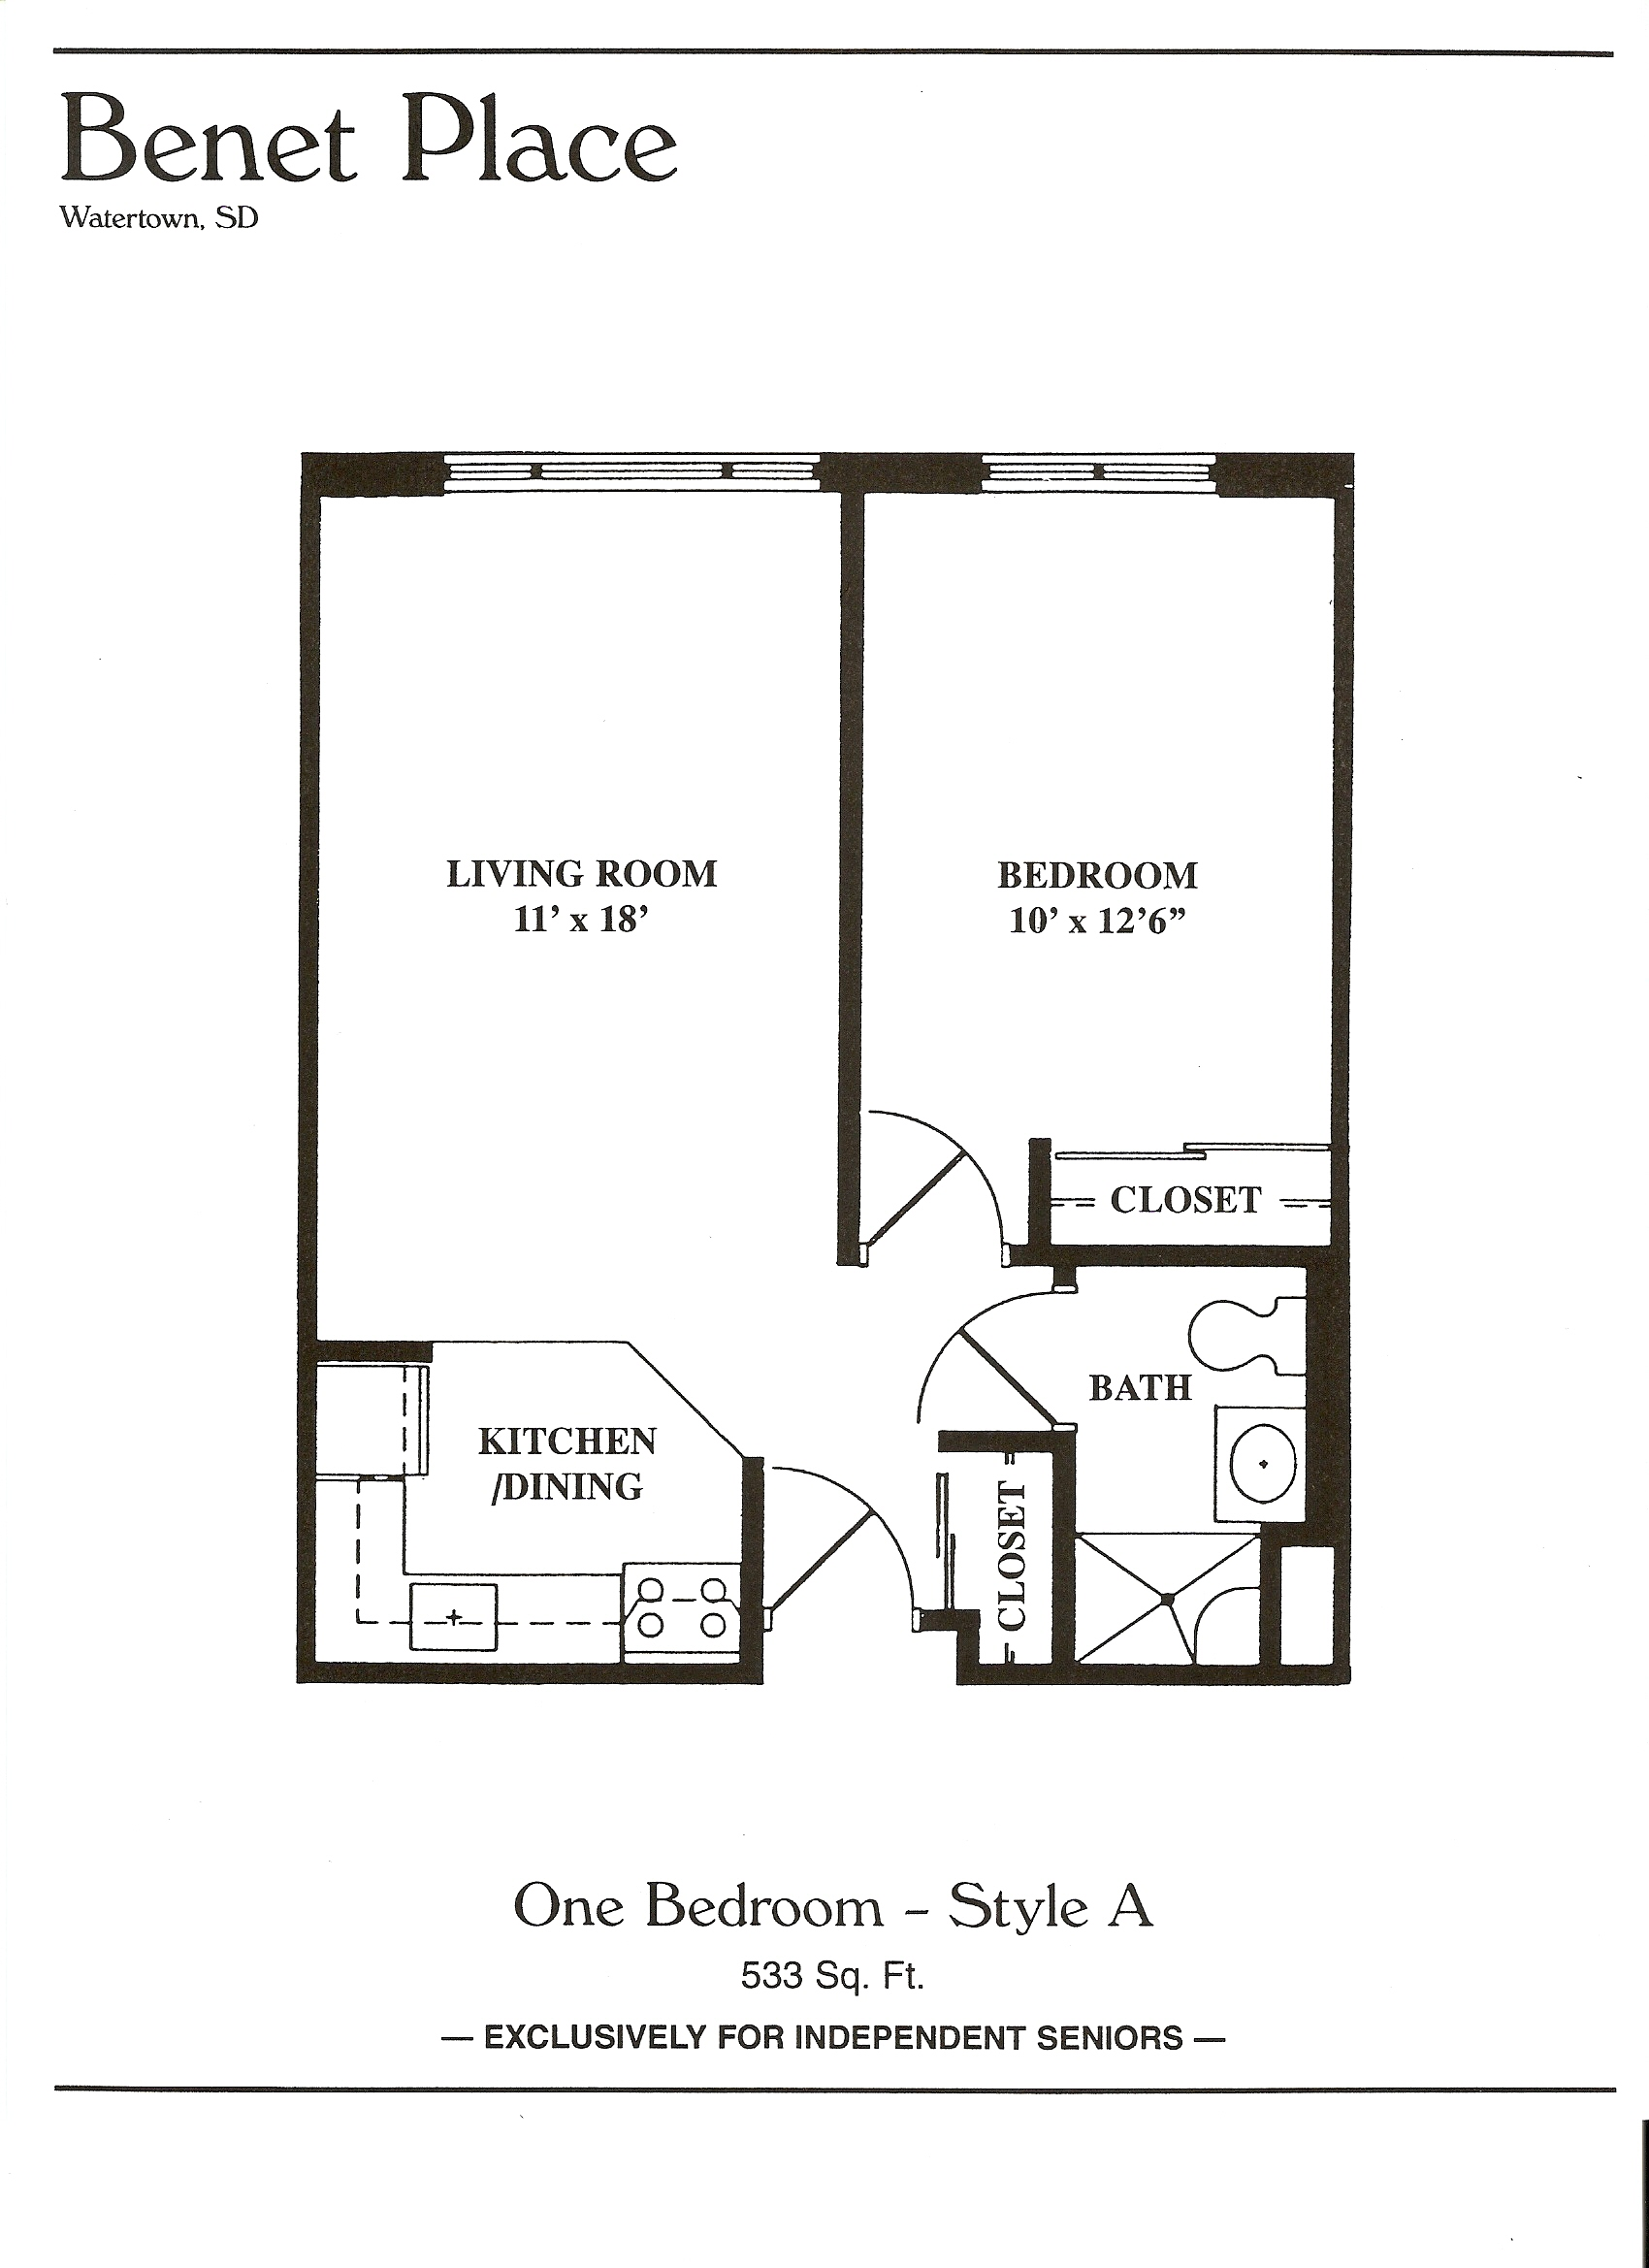 Beautiful 1 bedroom apartment floor plans photos for One bedroom flat floor plan